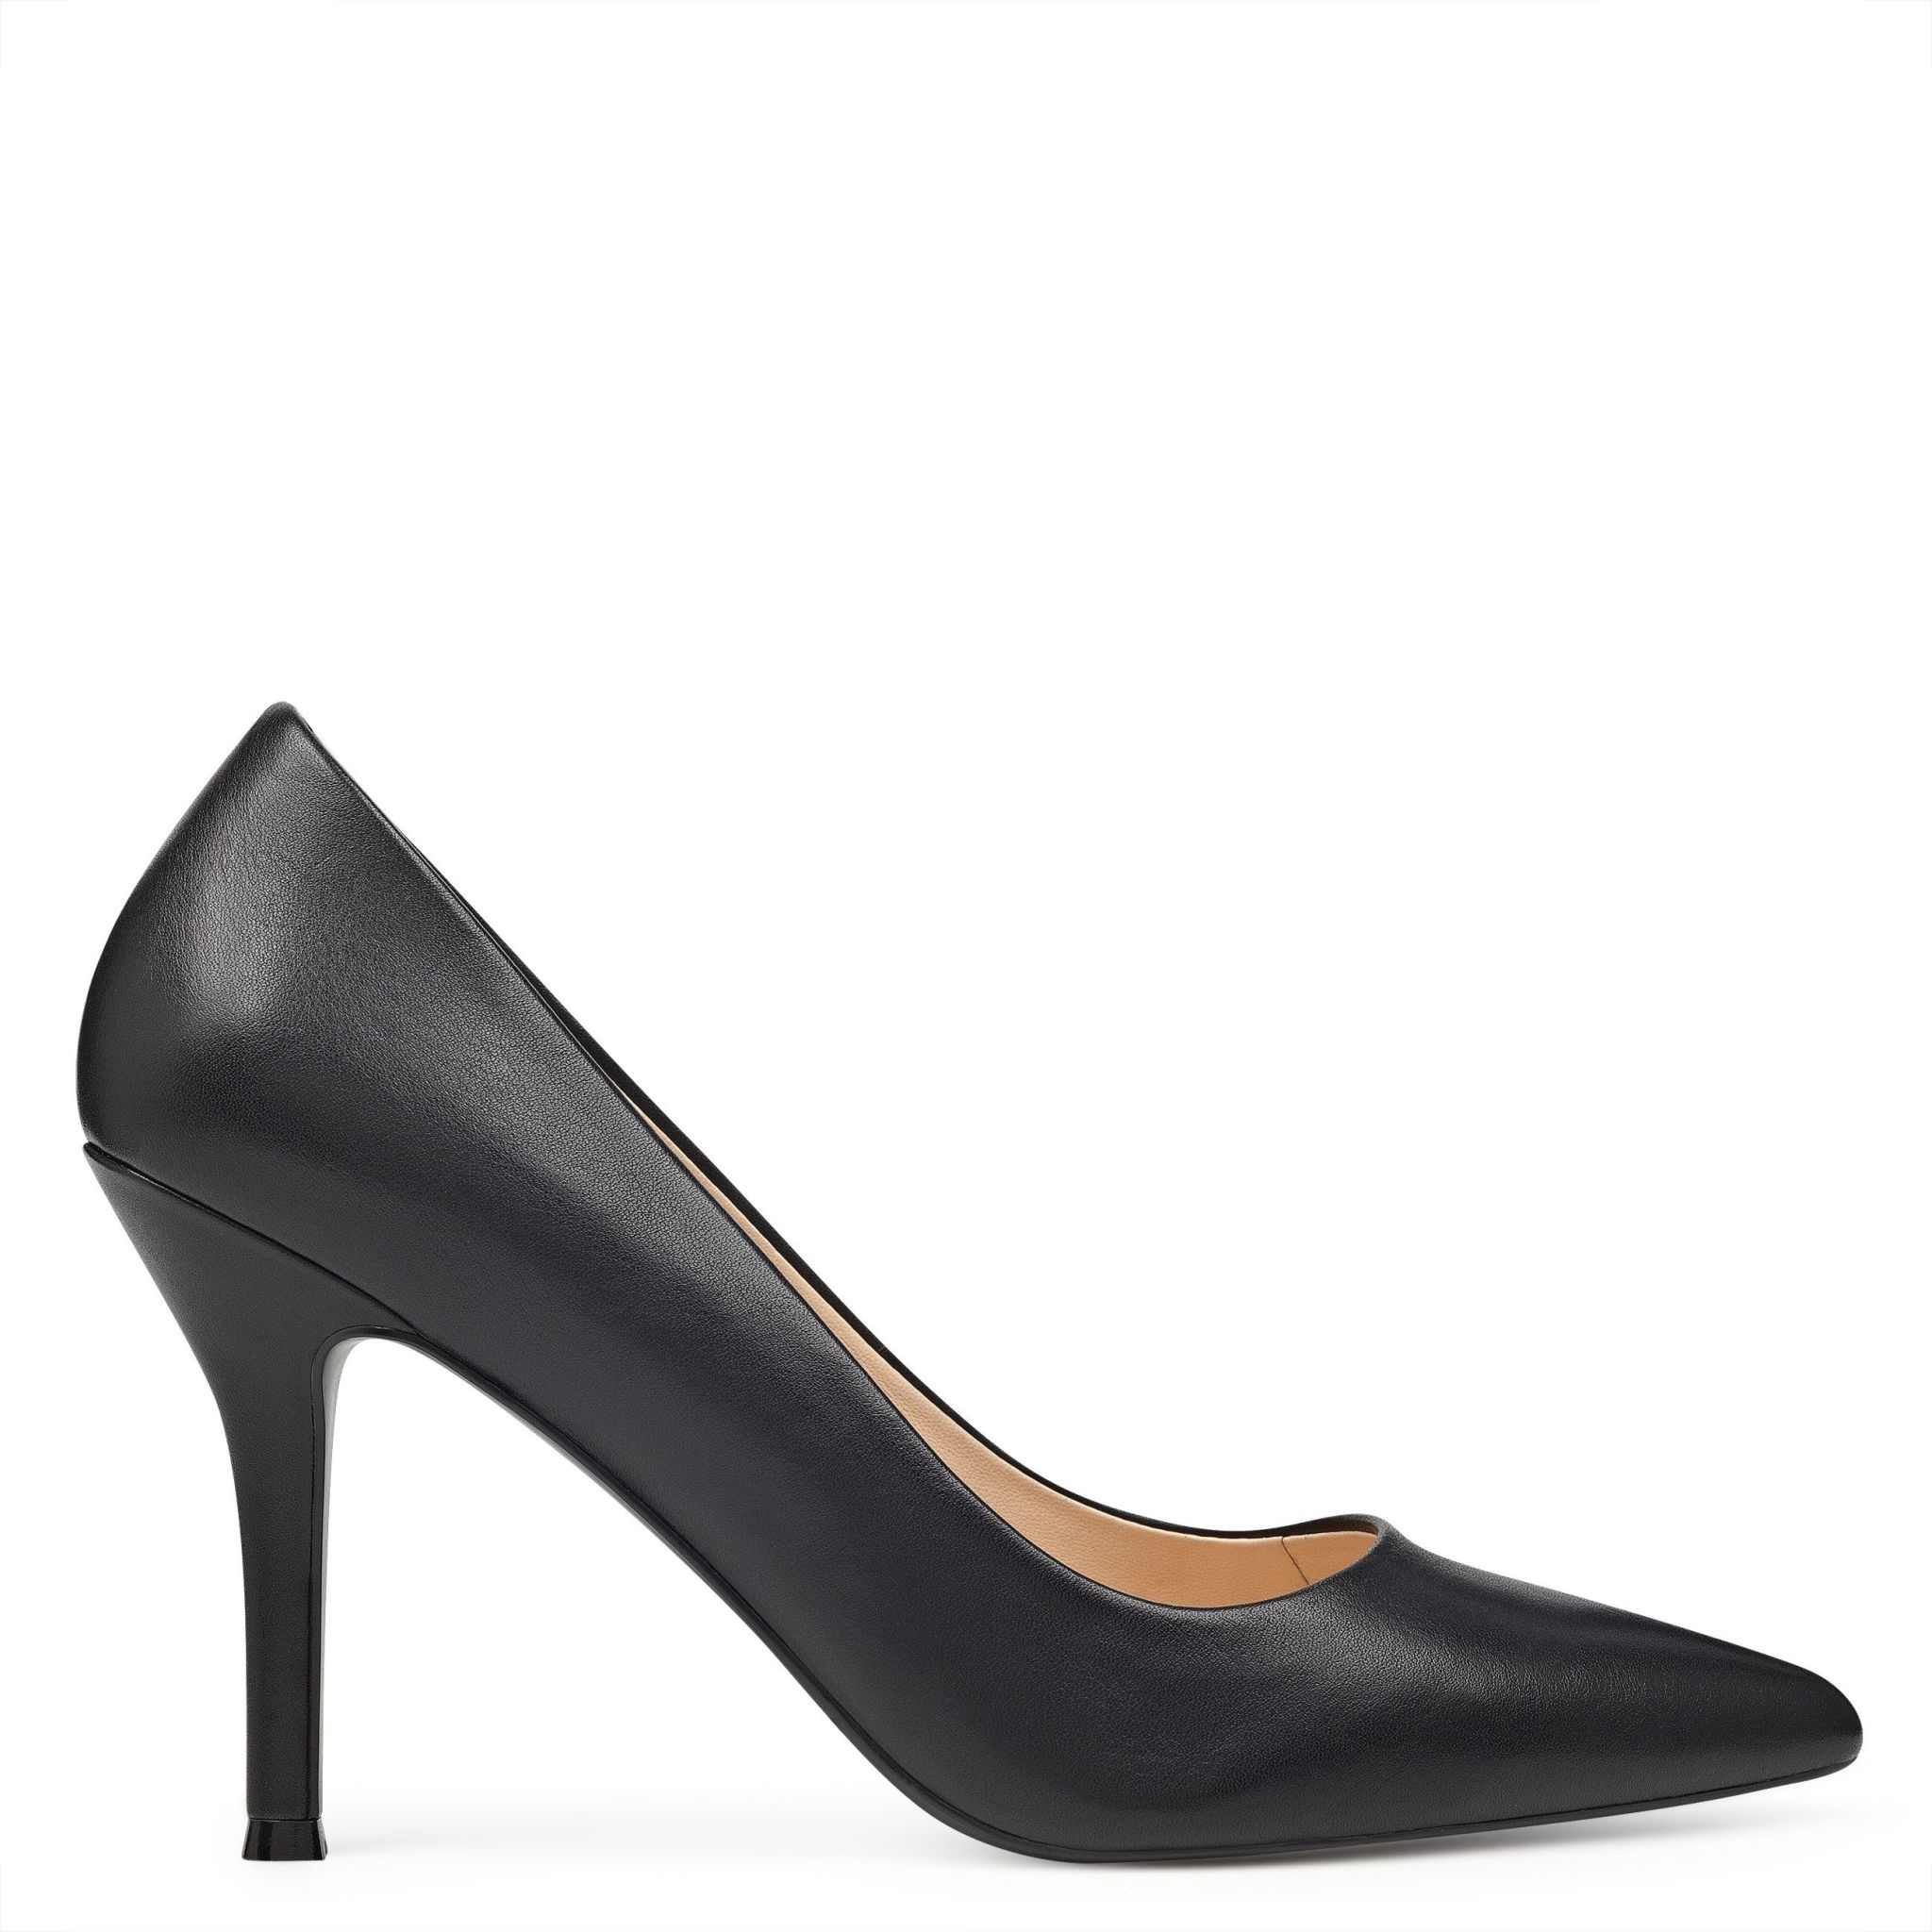 "NINE WEST NINE WEST ""FIFTH 9X9"" Leather Pump"